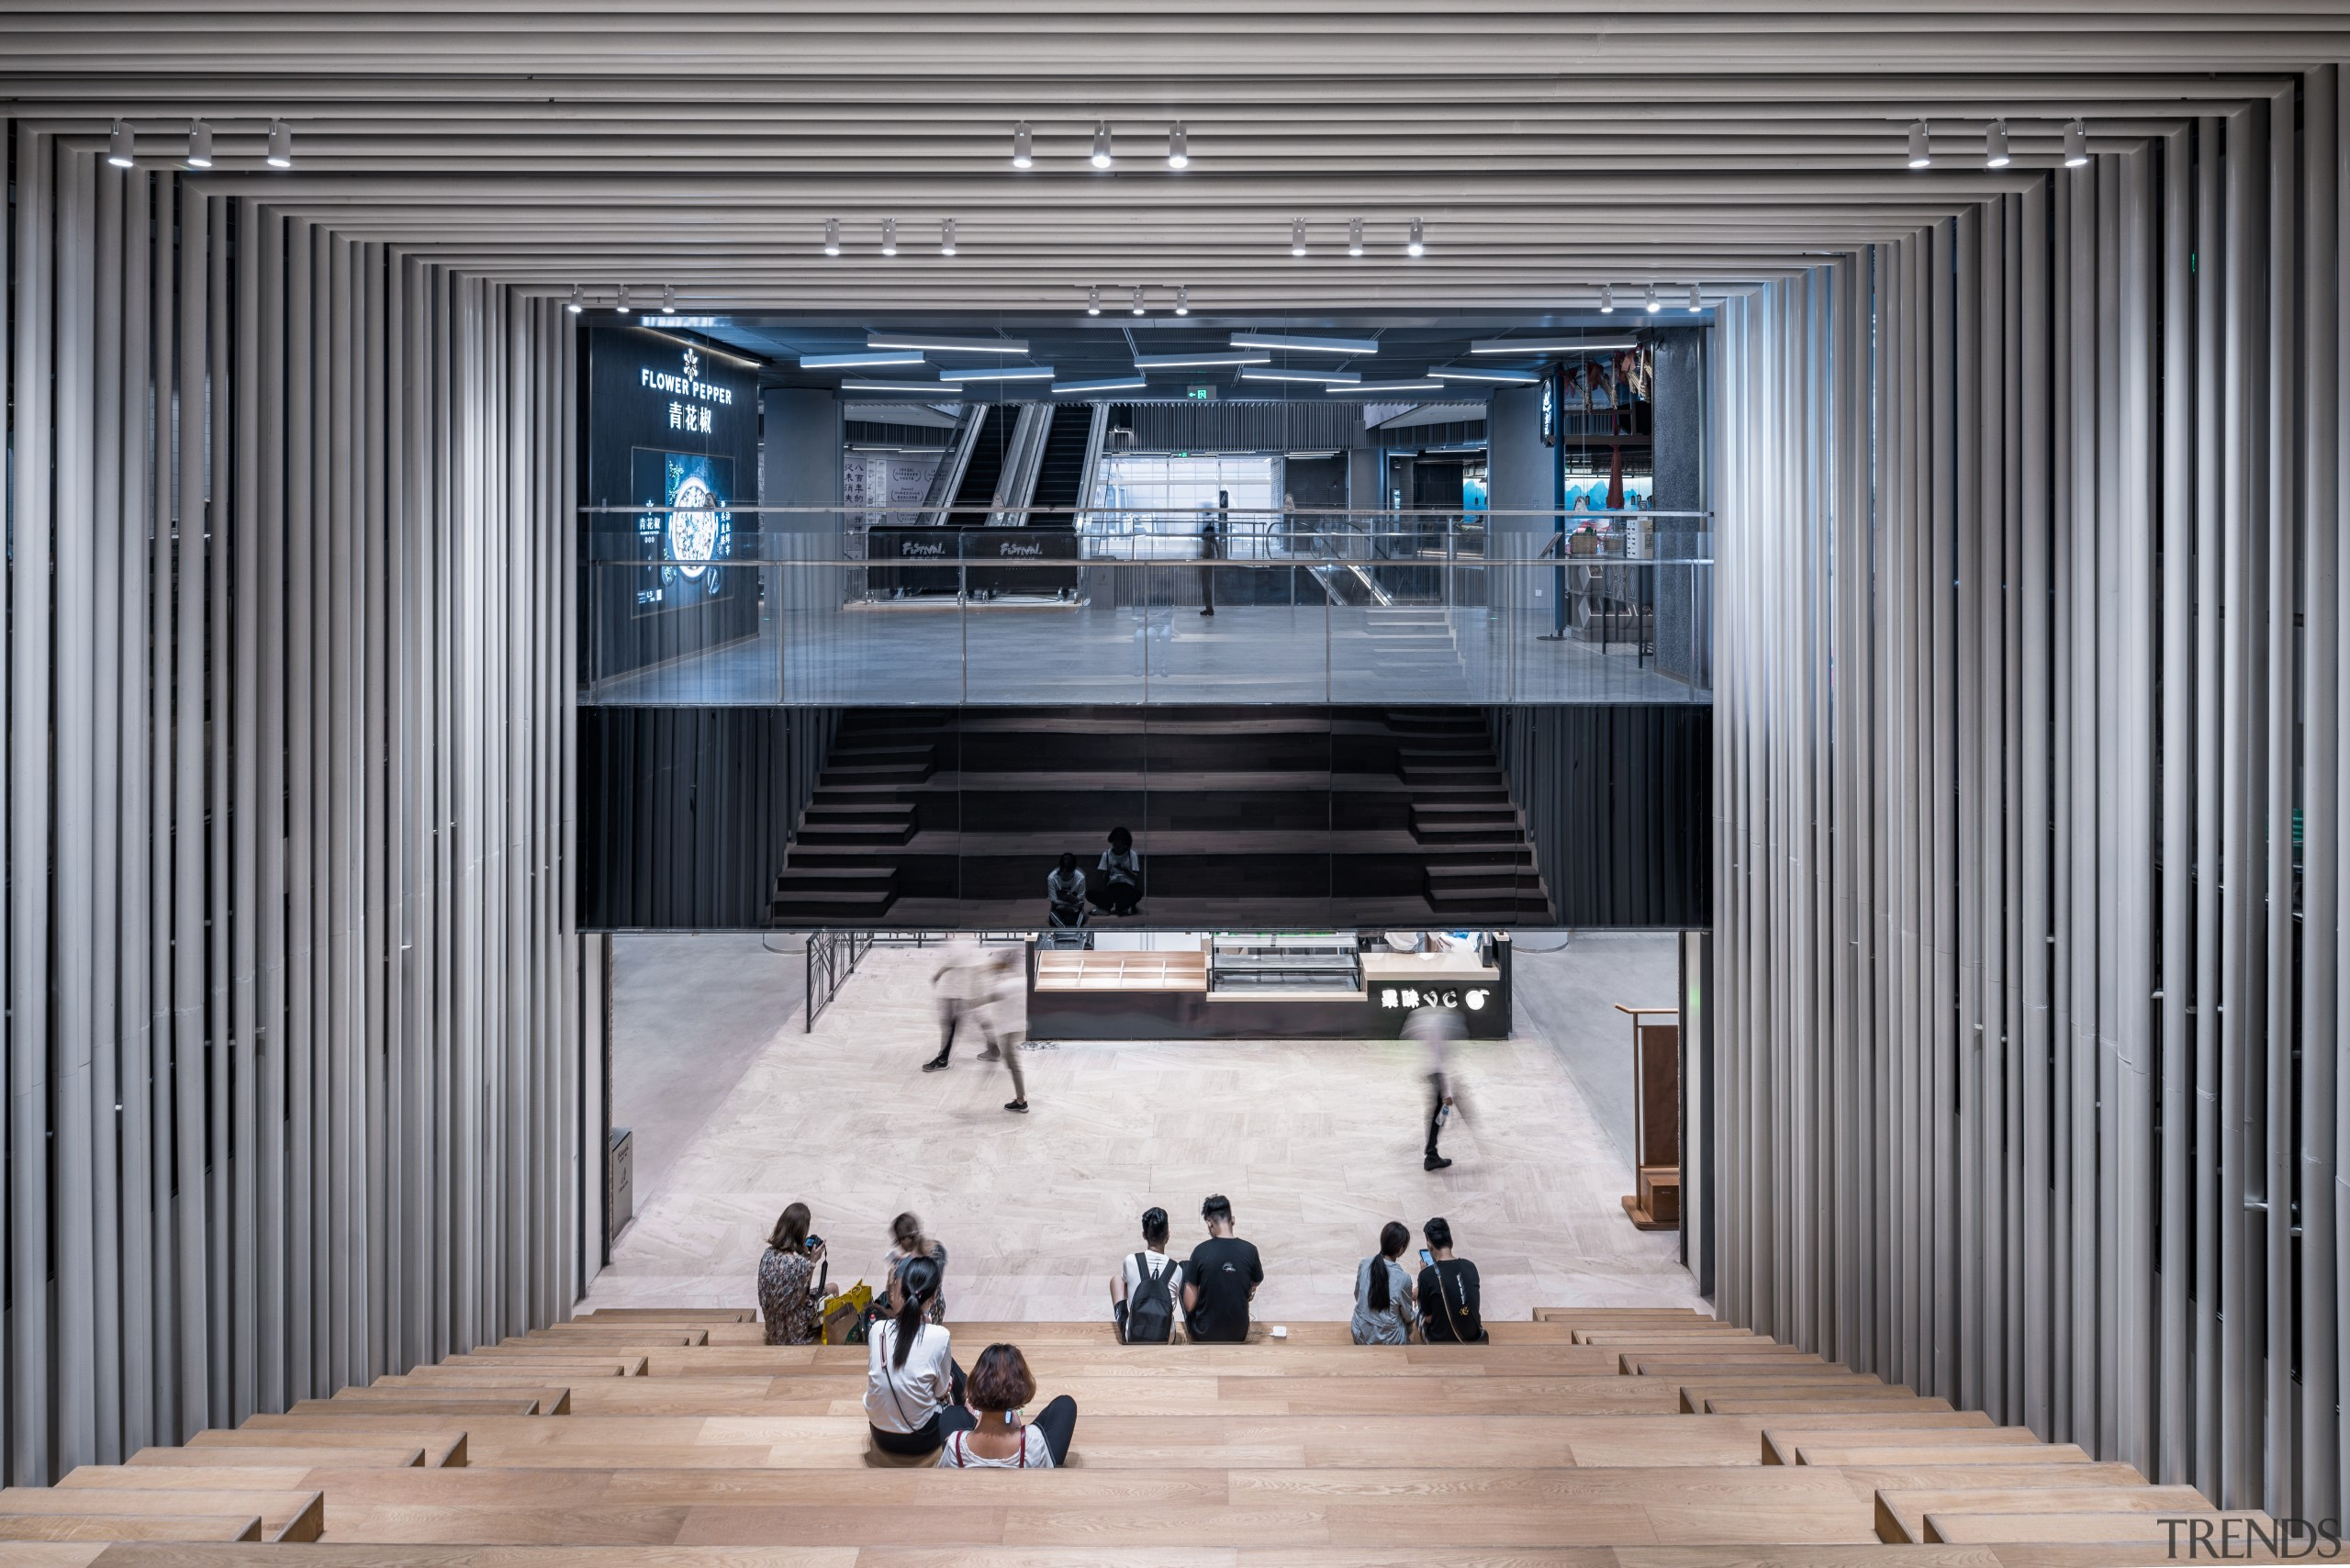 A relaxing space in the Shimao Festival City architecture, building, interior design, lobby, seating, Shimao Festival,  City Mall, Kokaistudios